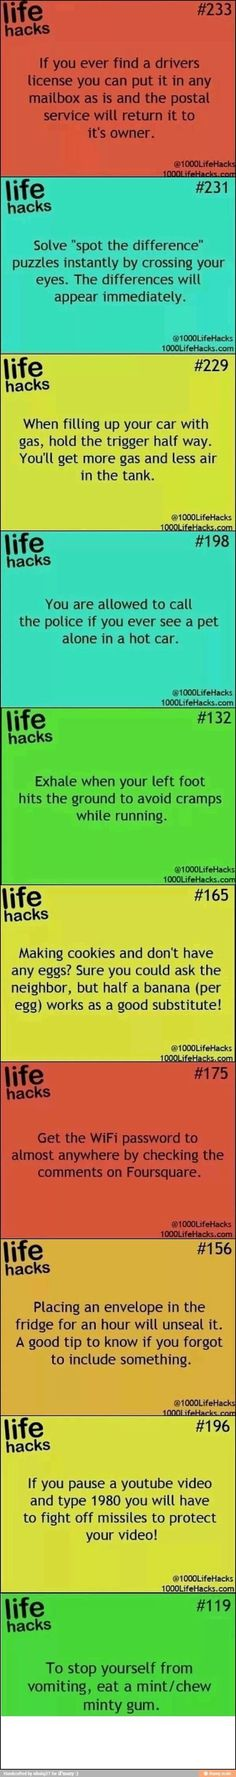 Life hacks and tips/ tricks